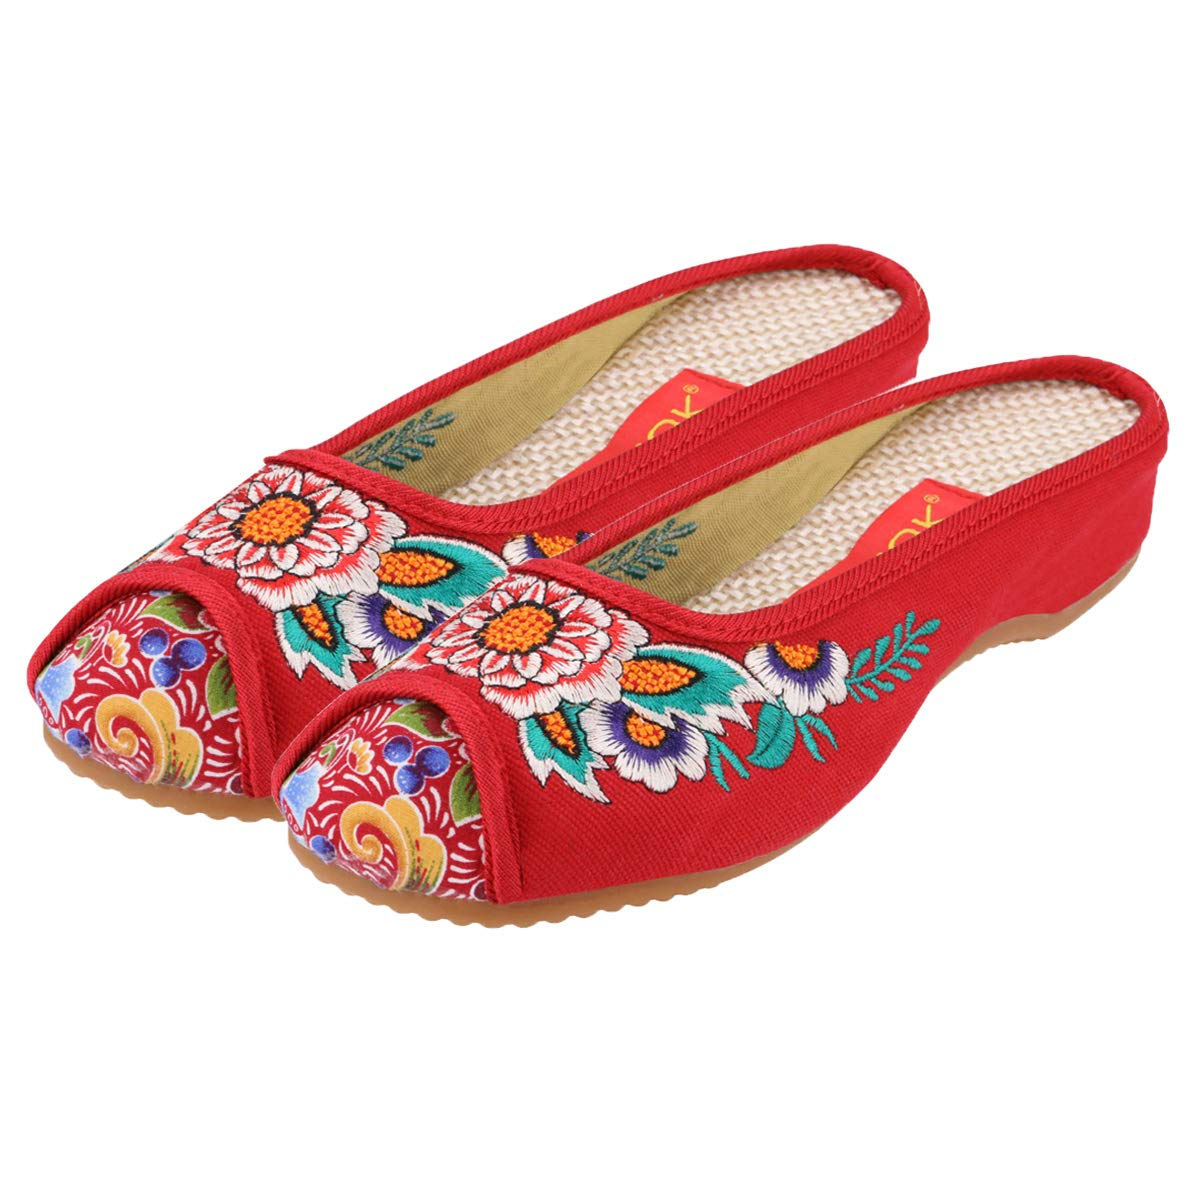 9a624f2d4 Amazon.com   CINAK Embroidered Flower Women's Shoes Backless Mules  Comfortable Home Flats Sandals Round Toe Slippers Loafers   Shoes